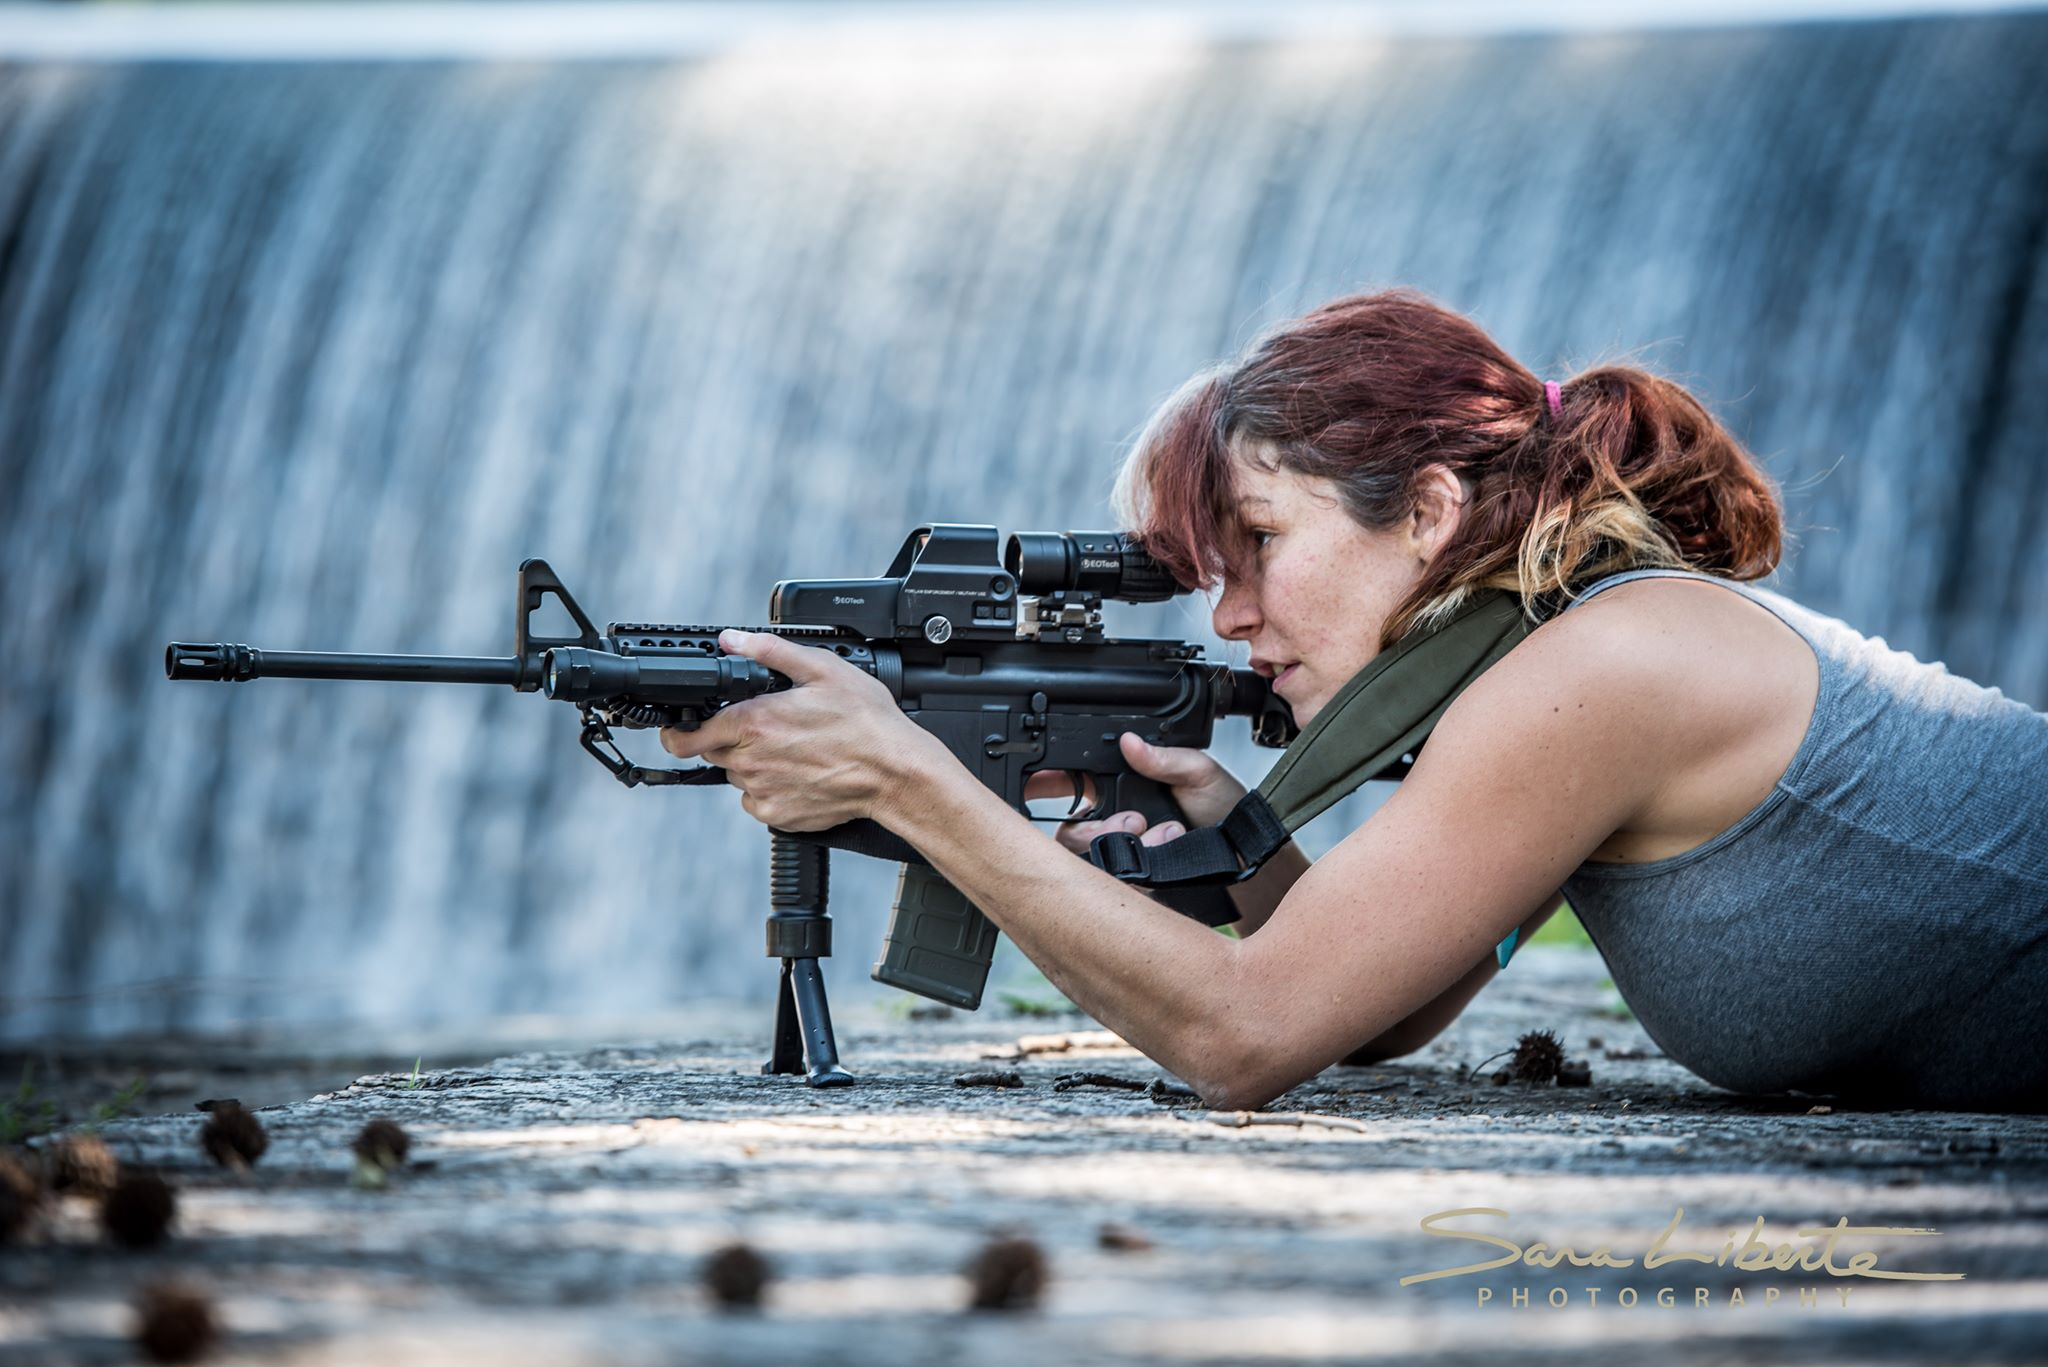 Woman with AR-15